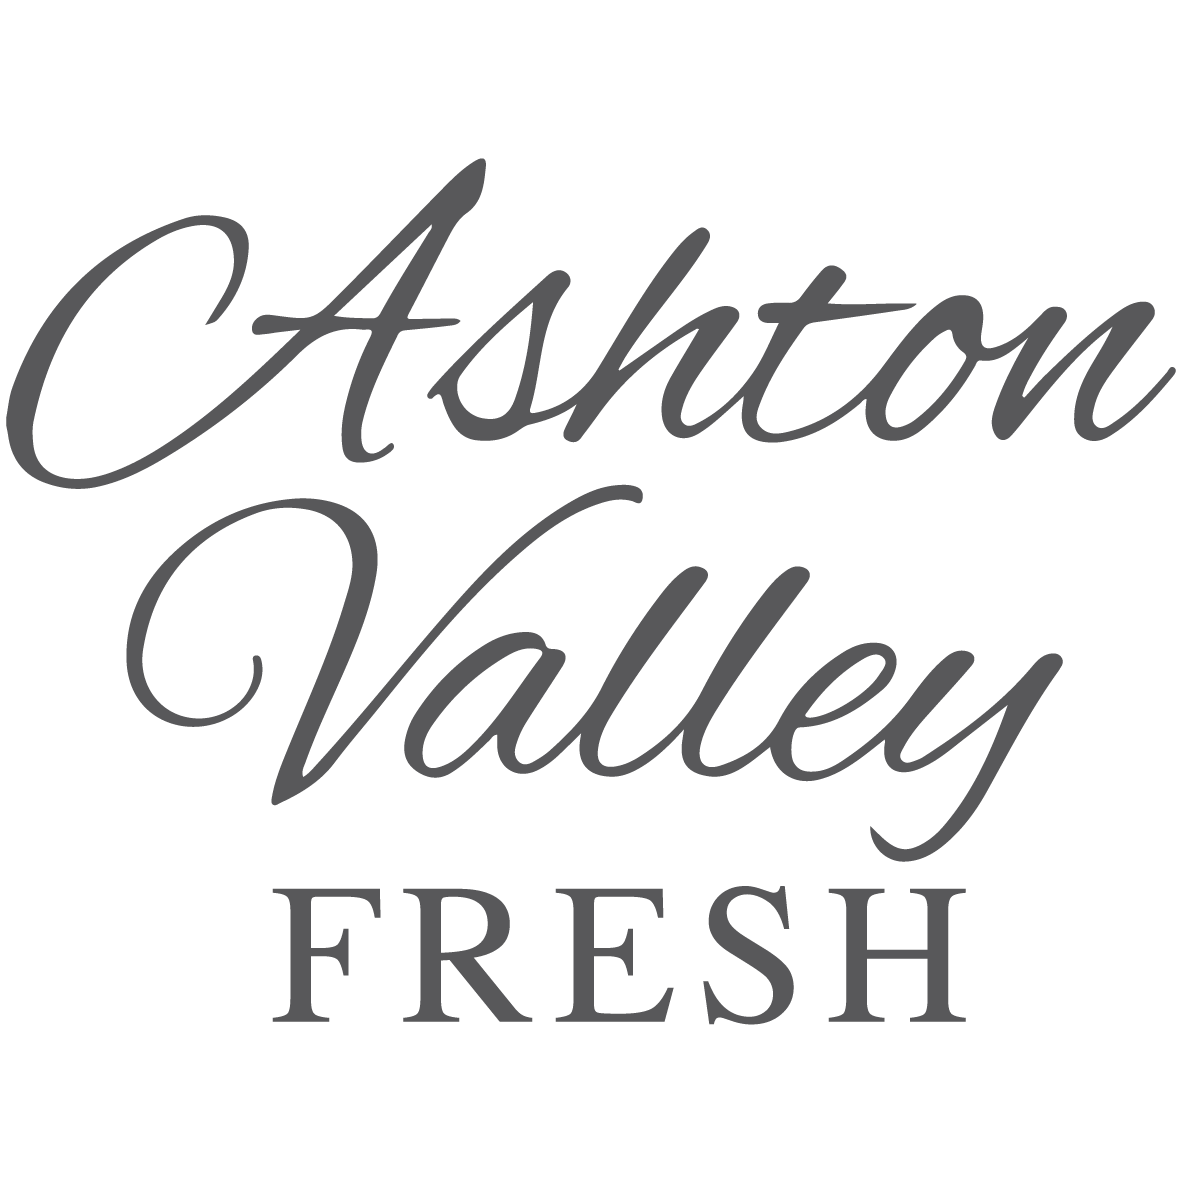 Ashton Valley Fresh